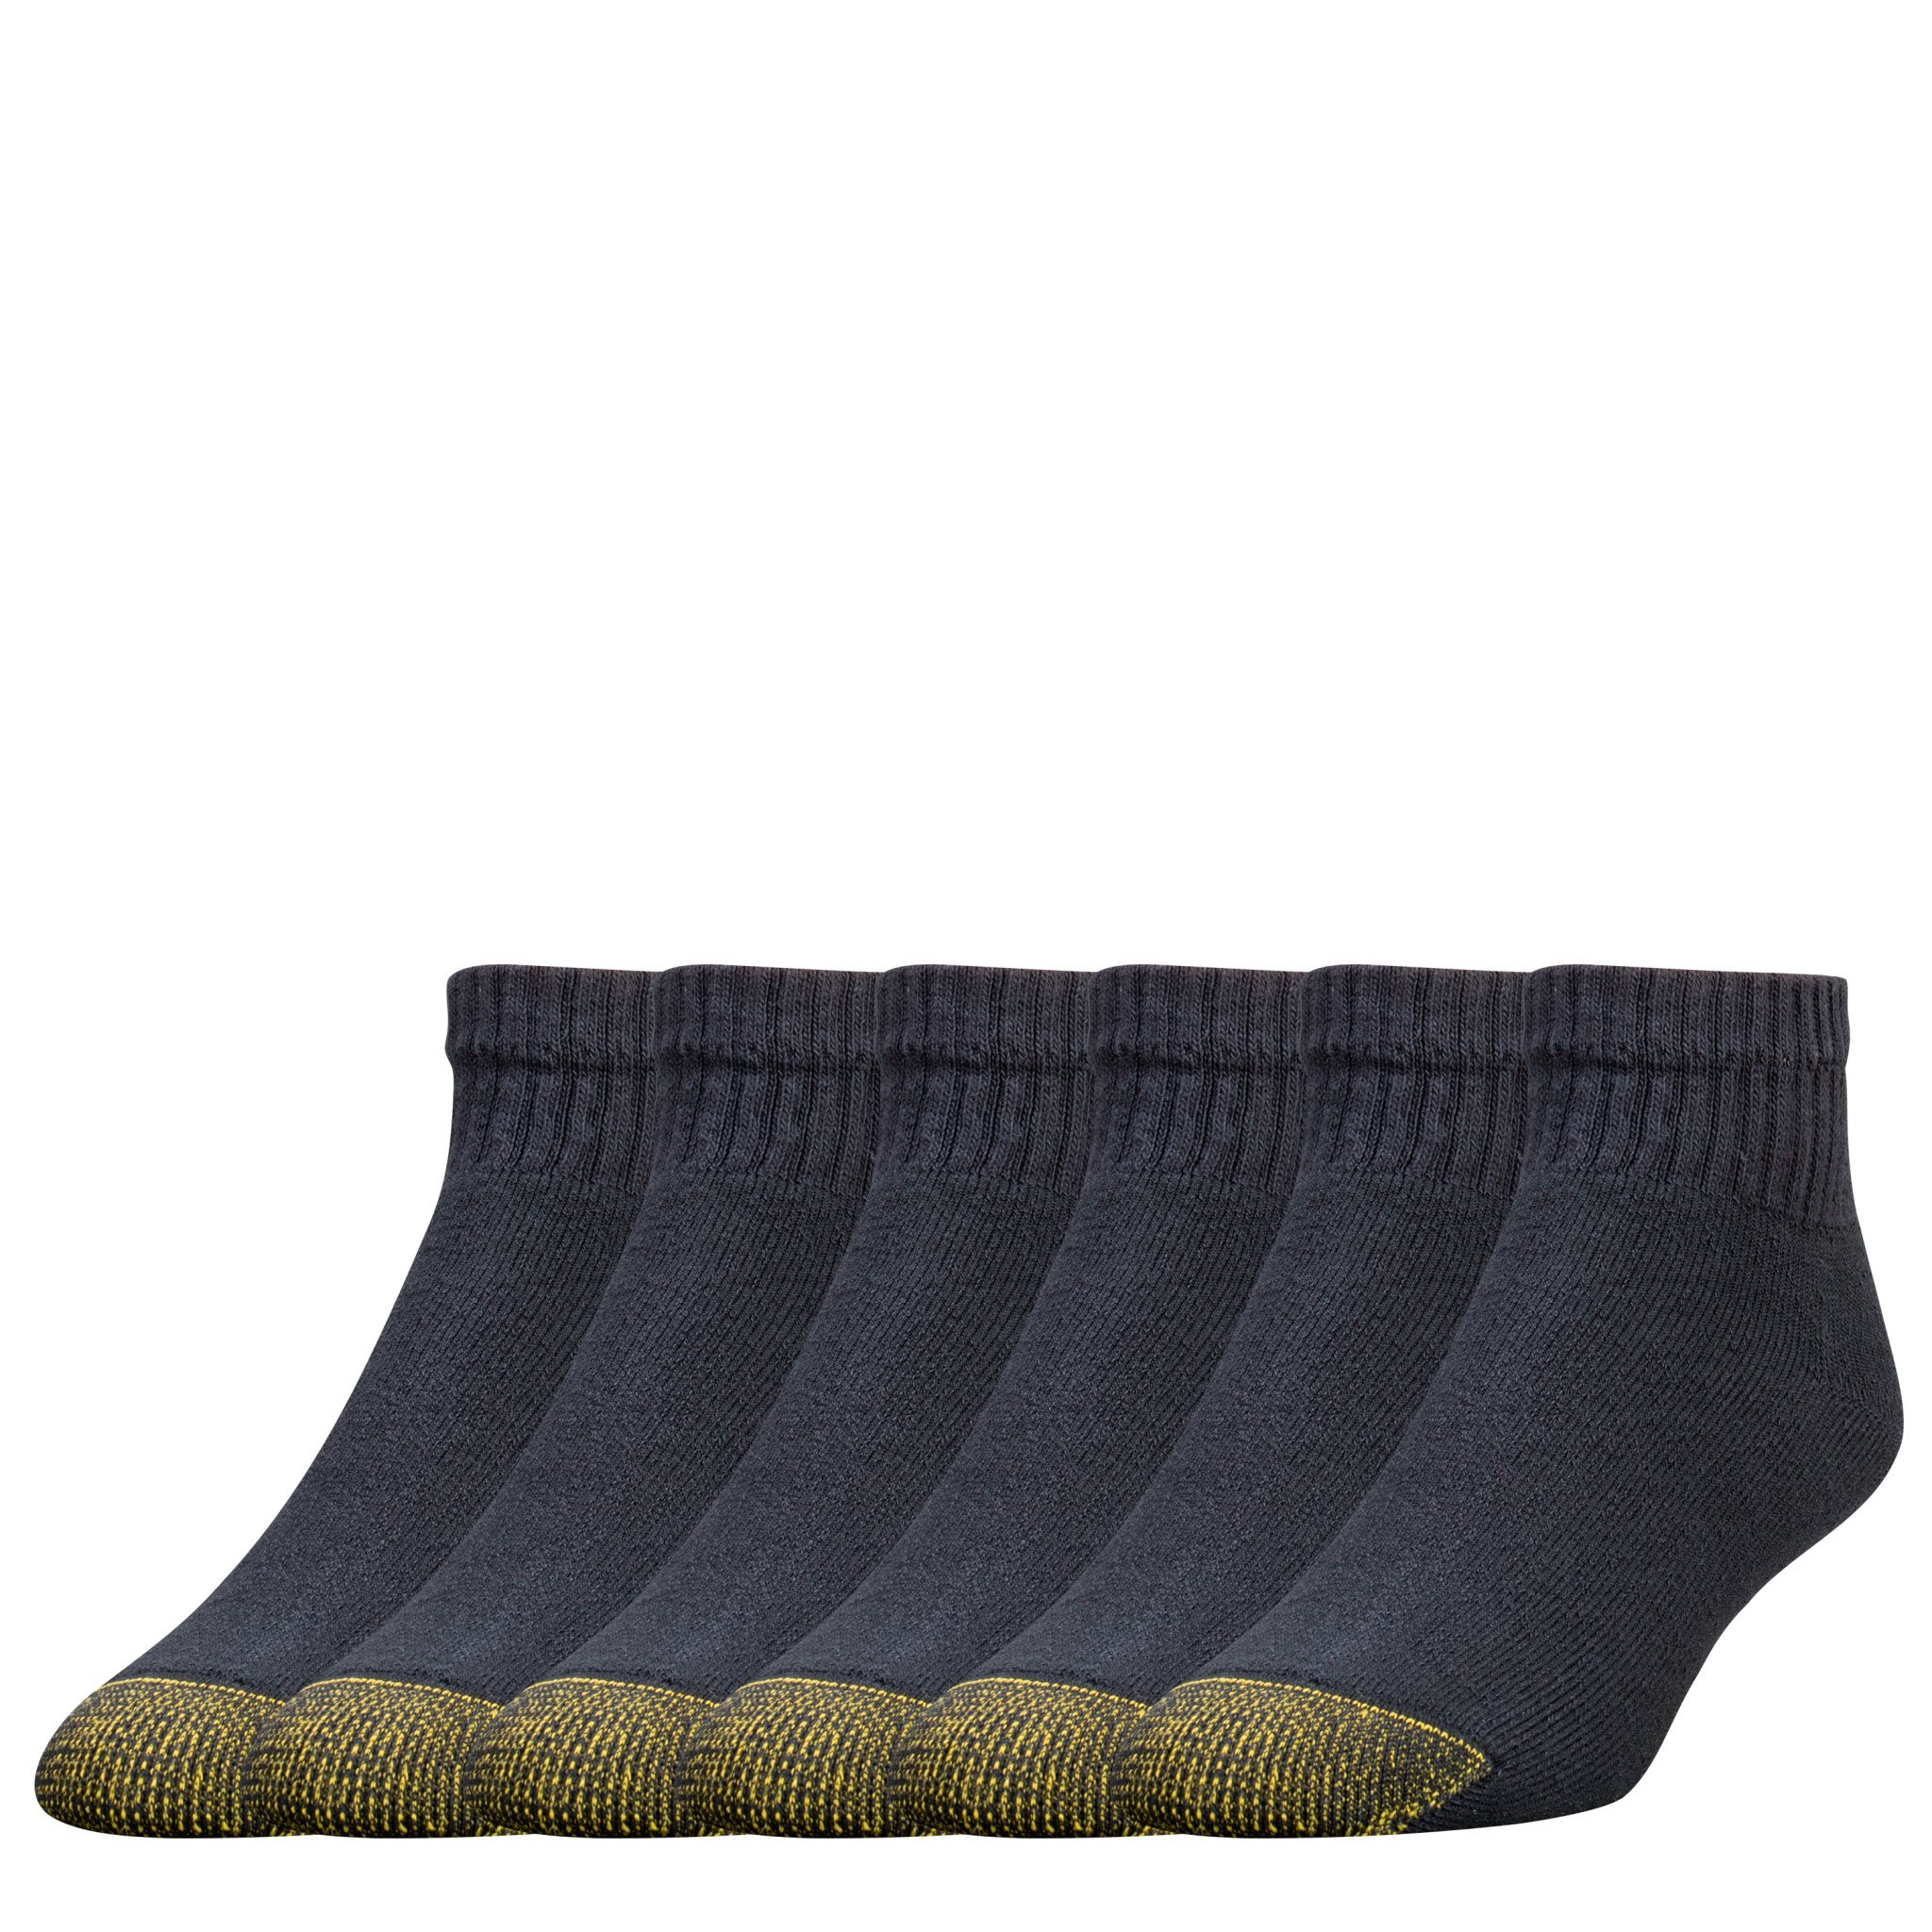 Gold Toe Men's Cotton Quarter Athletic Sock Six-Pack (3-pk (18 pair) 10-13, Black) by Gold Toe